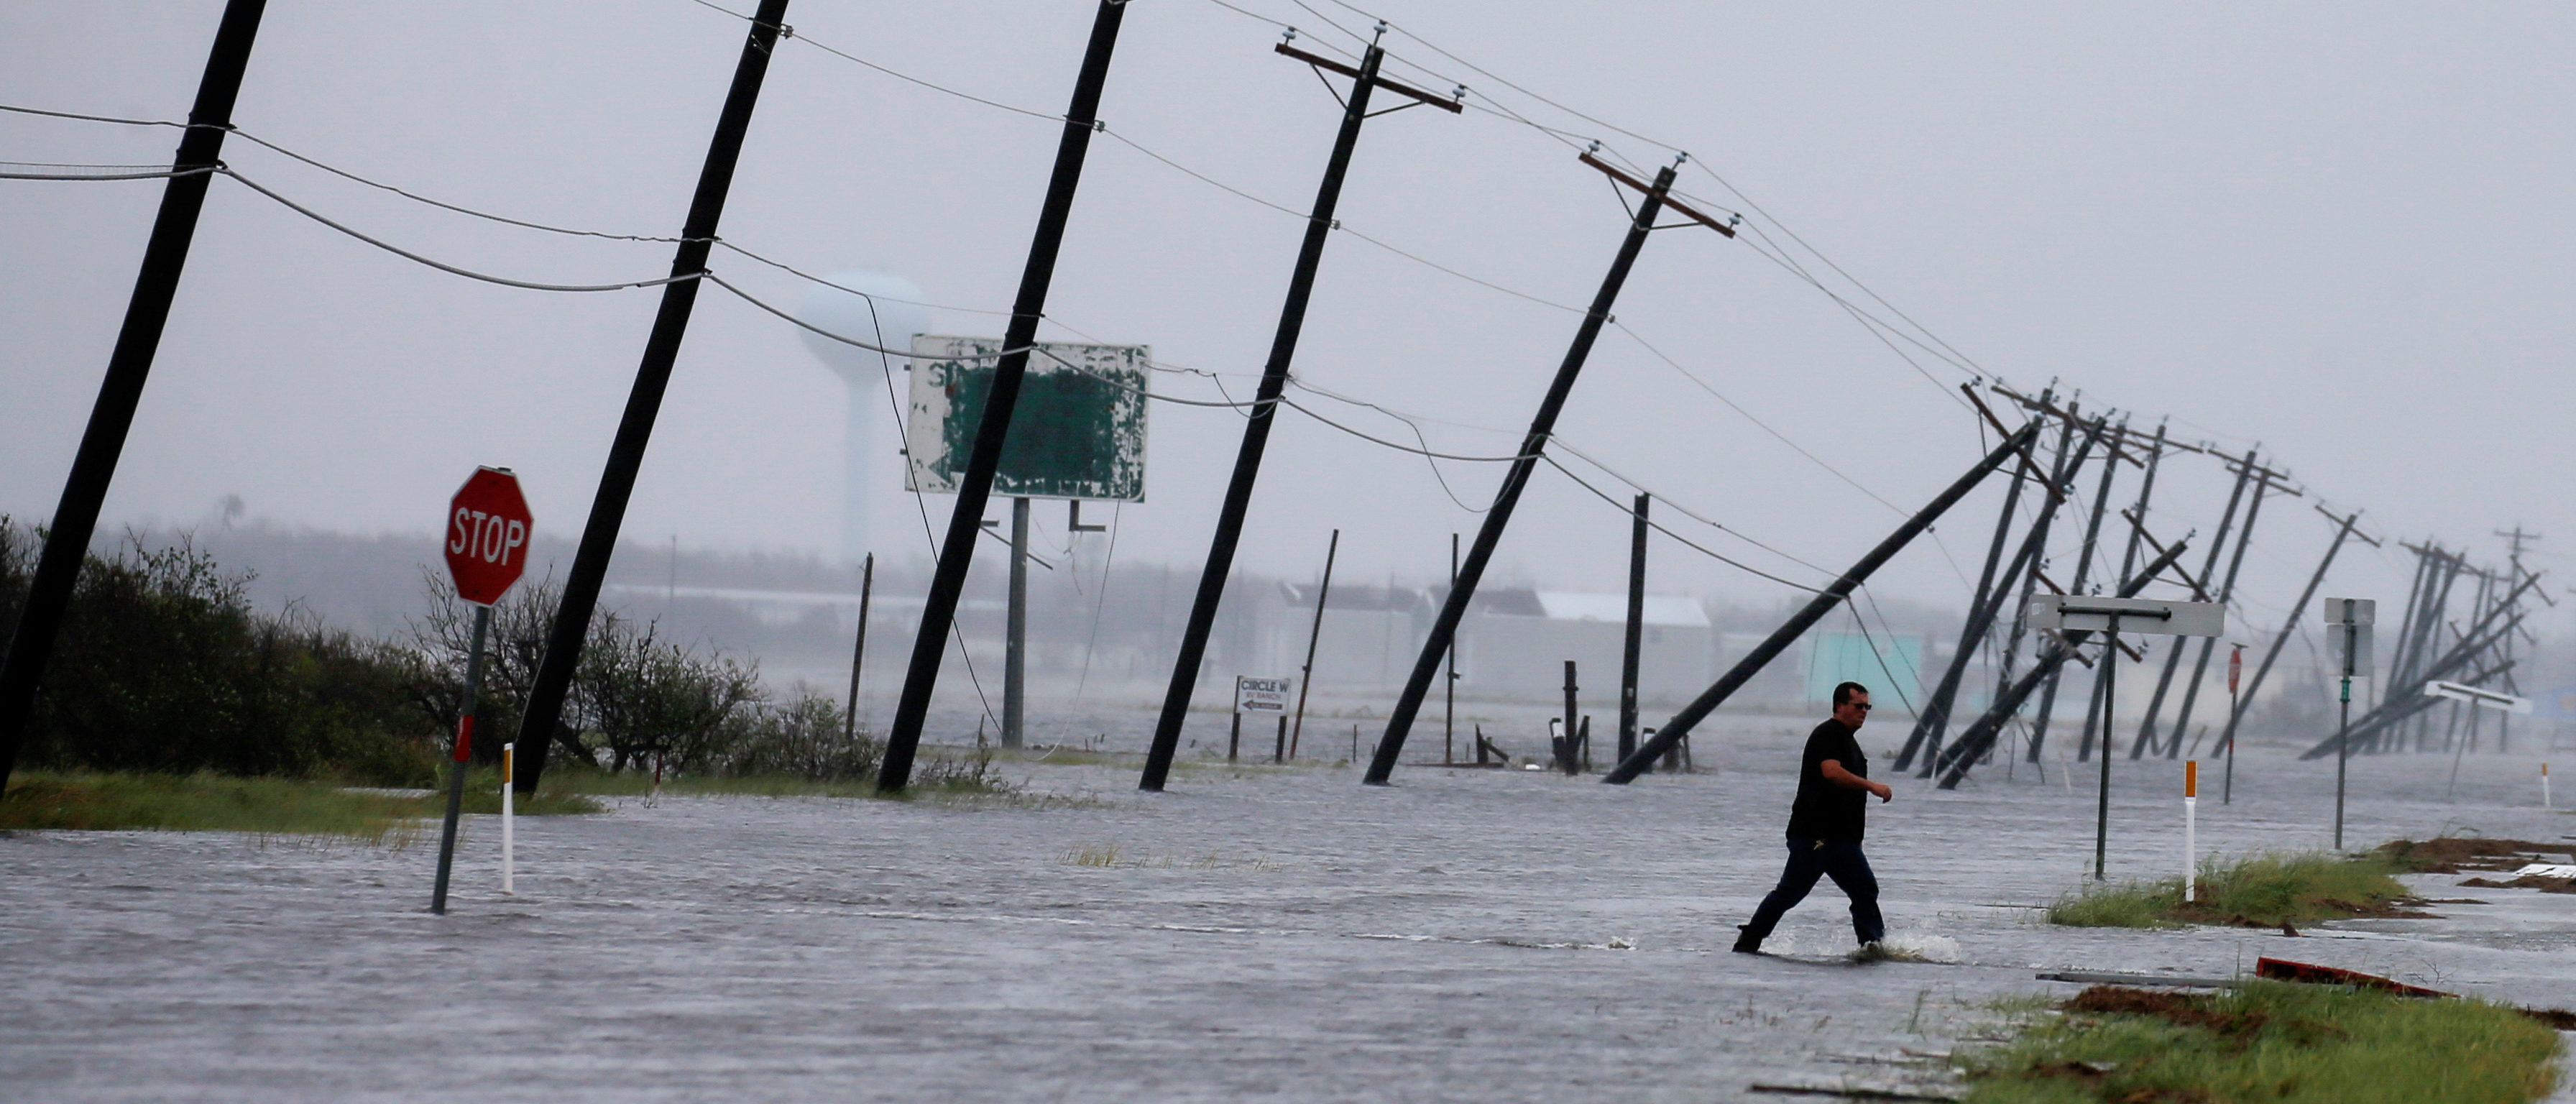 A man walks through floods waters and onto the main road after surveying his property which was hit by Hurricane Harvey in Rockport, Texas, U.S. August 26, 2017. REUTERS/Adrees Latif - RC11AE0B7710